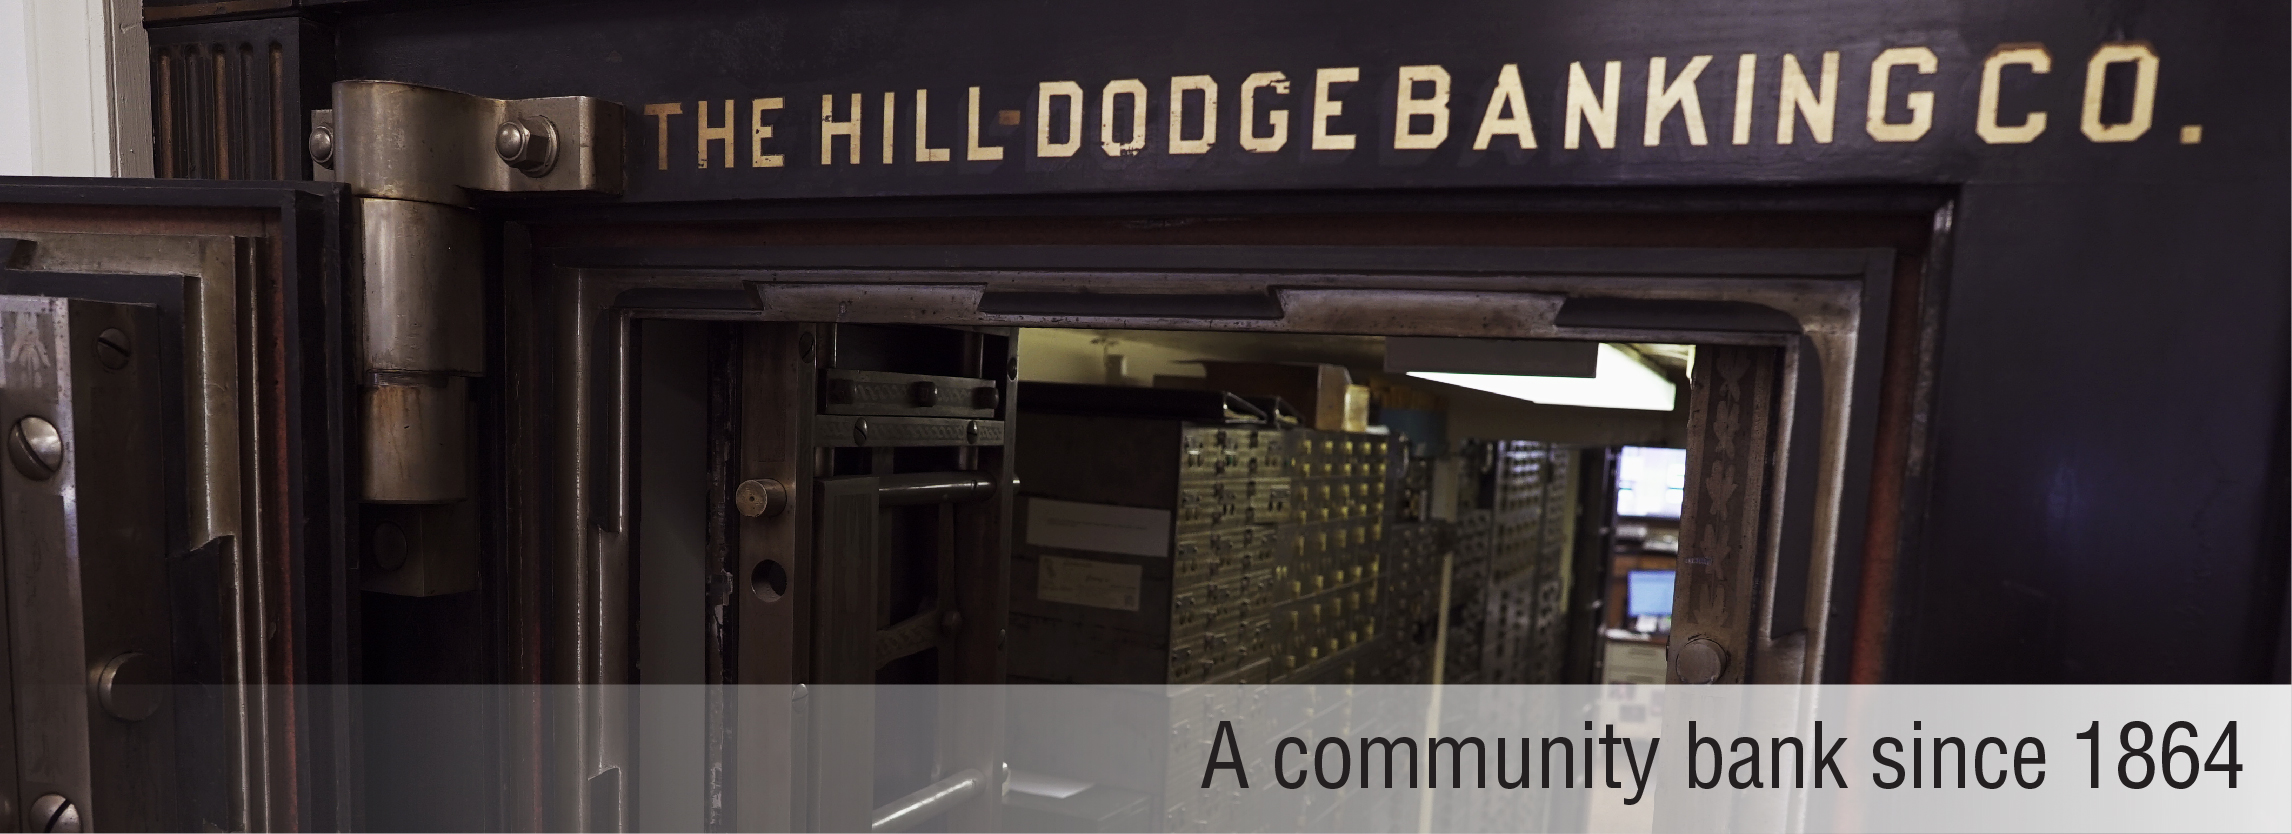 A community bank since 1864.